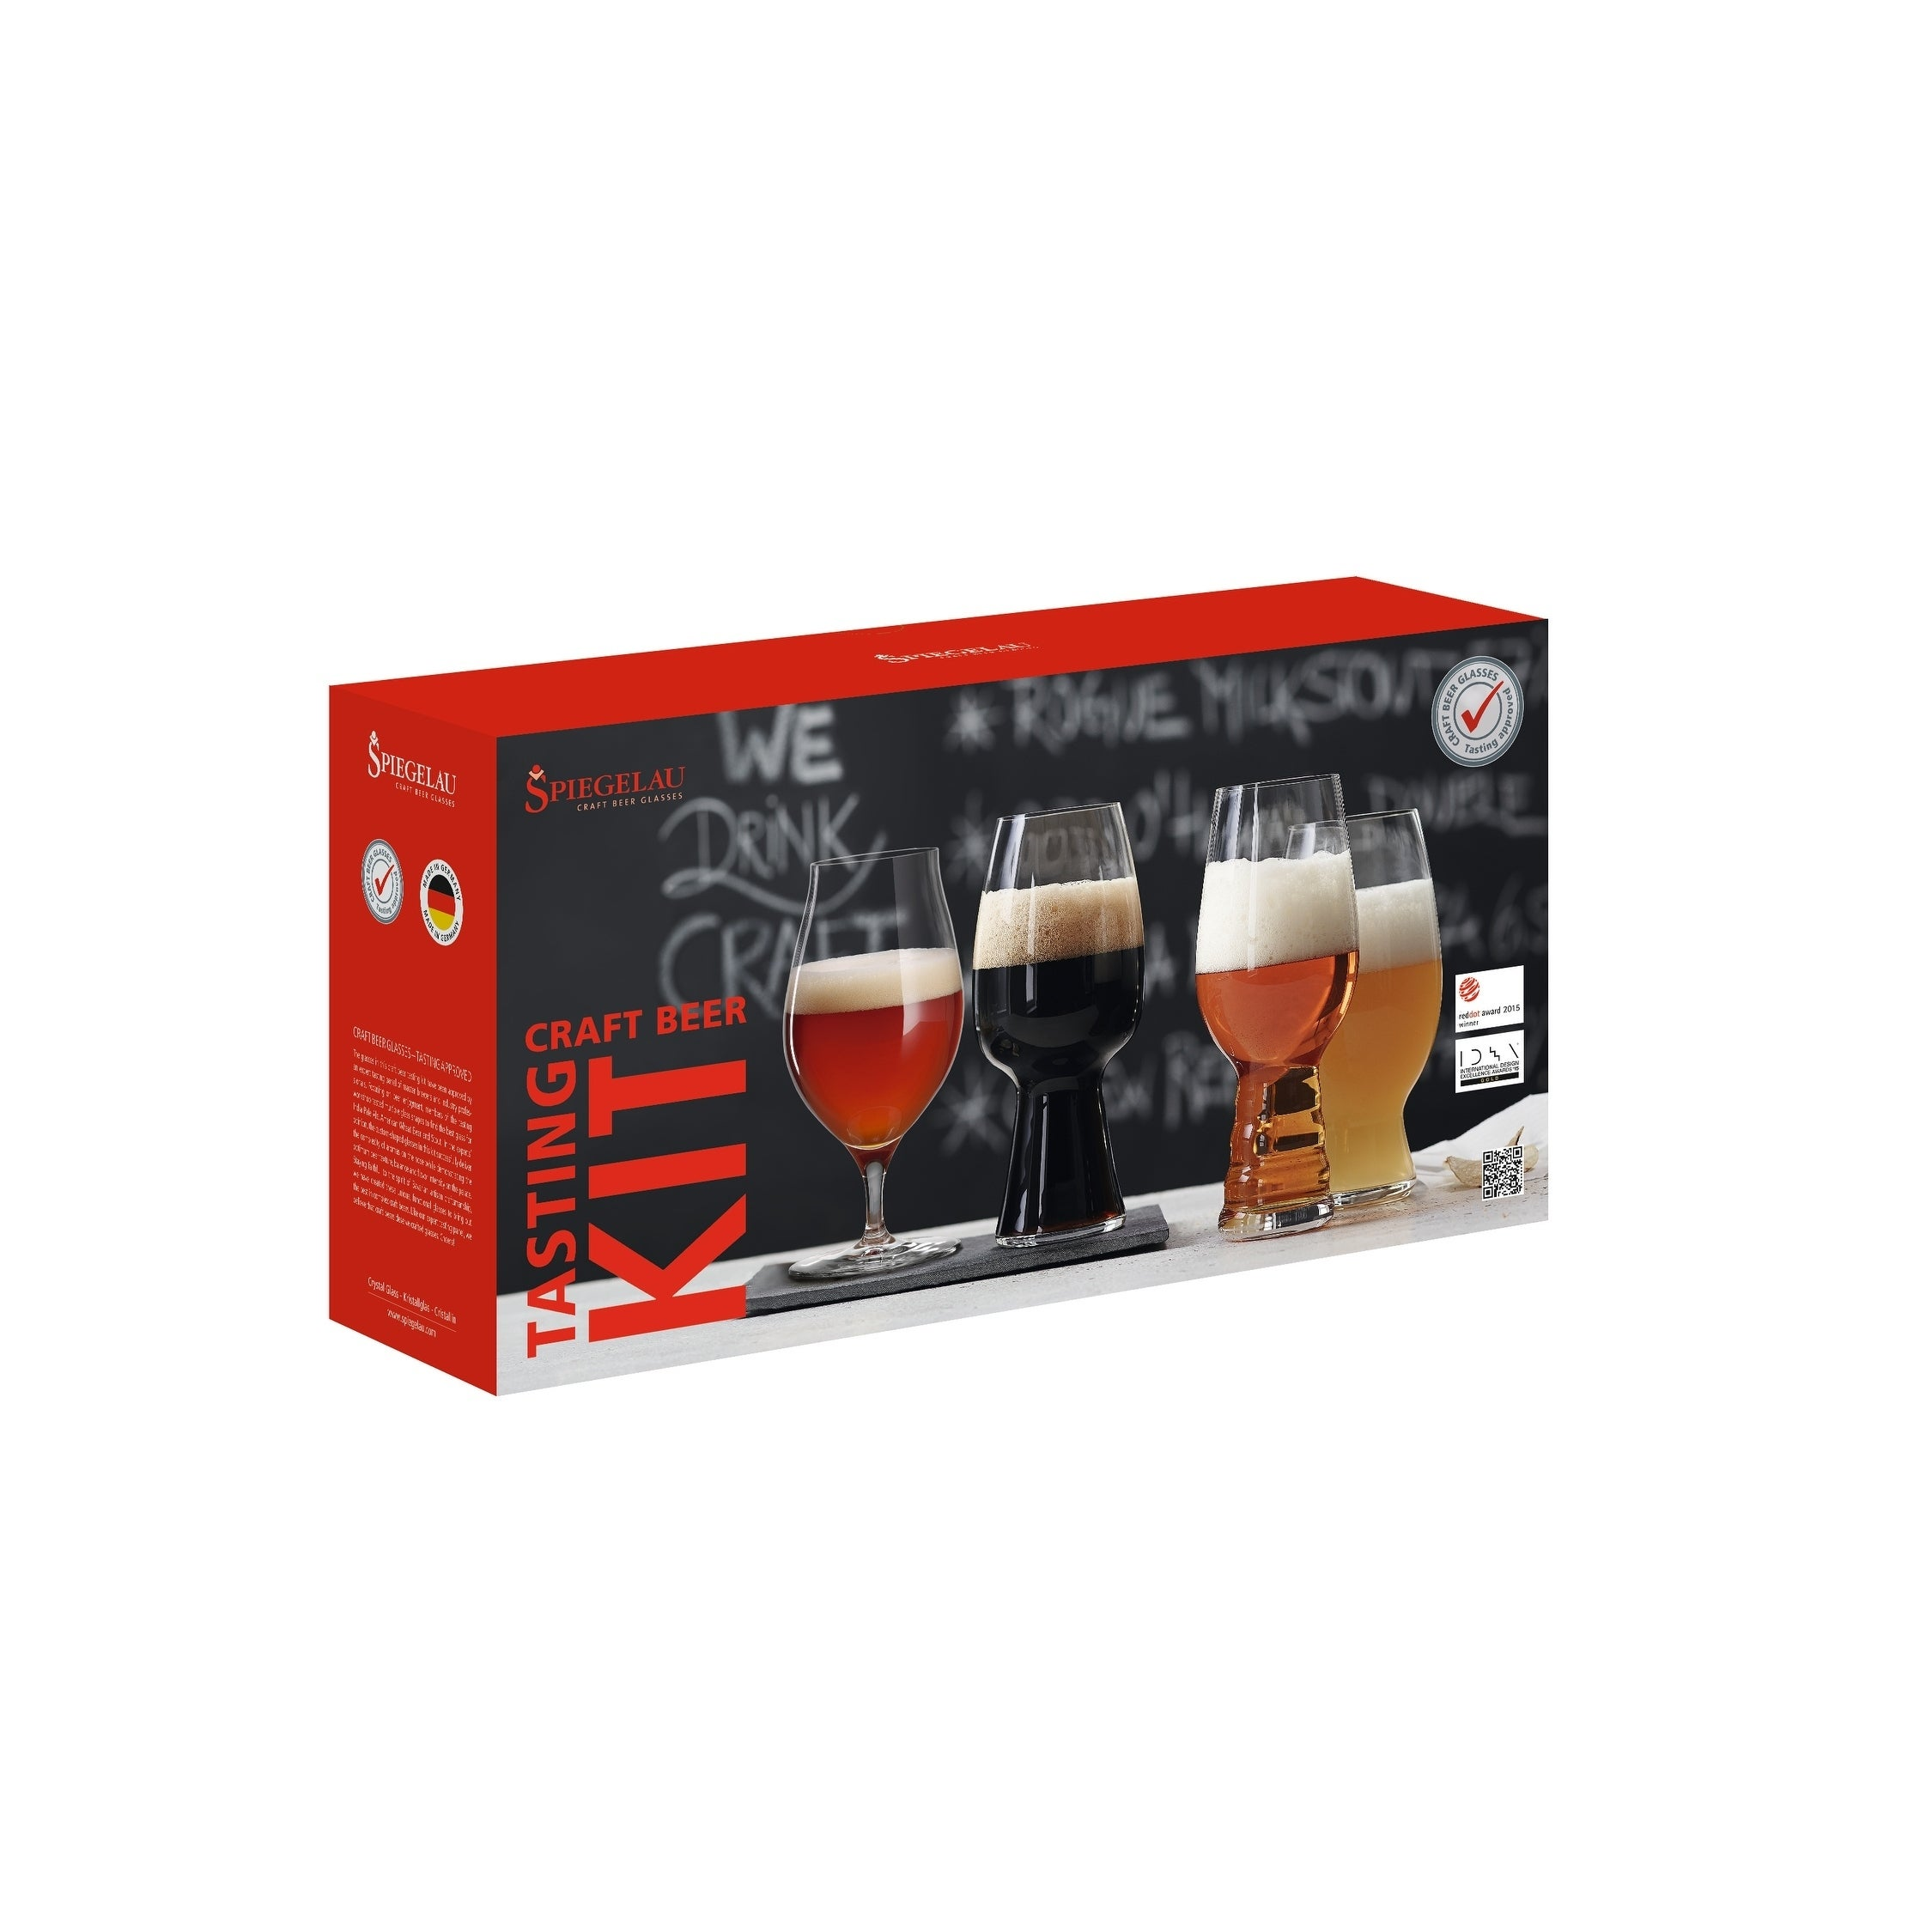 Spiegelau Craft Beer Tasting Kit (set of 4), Multi (Glass)